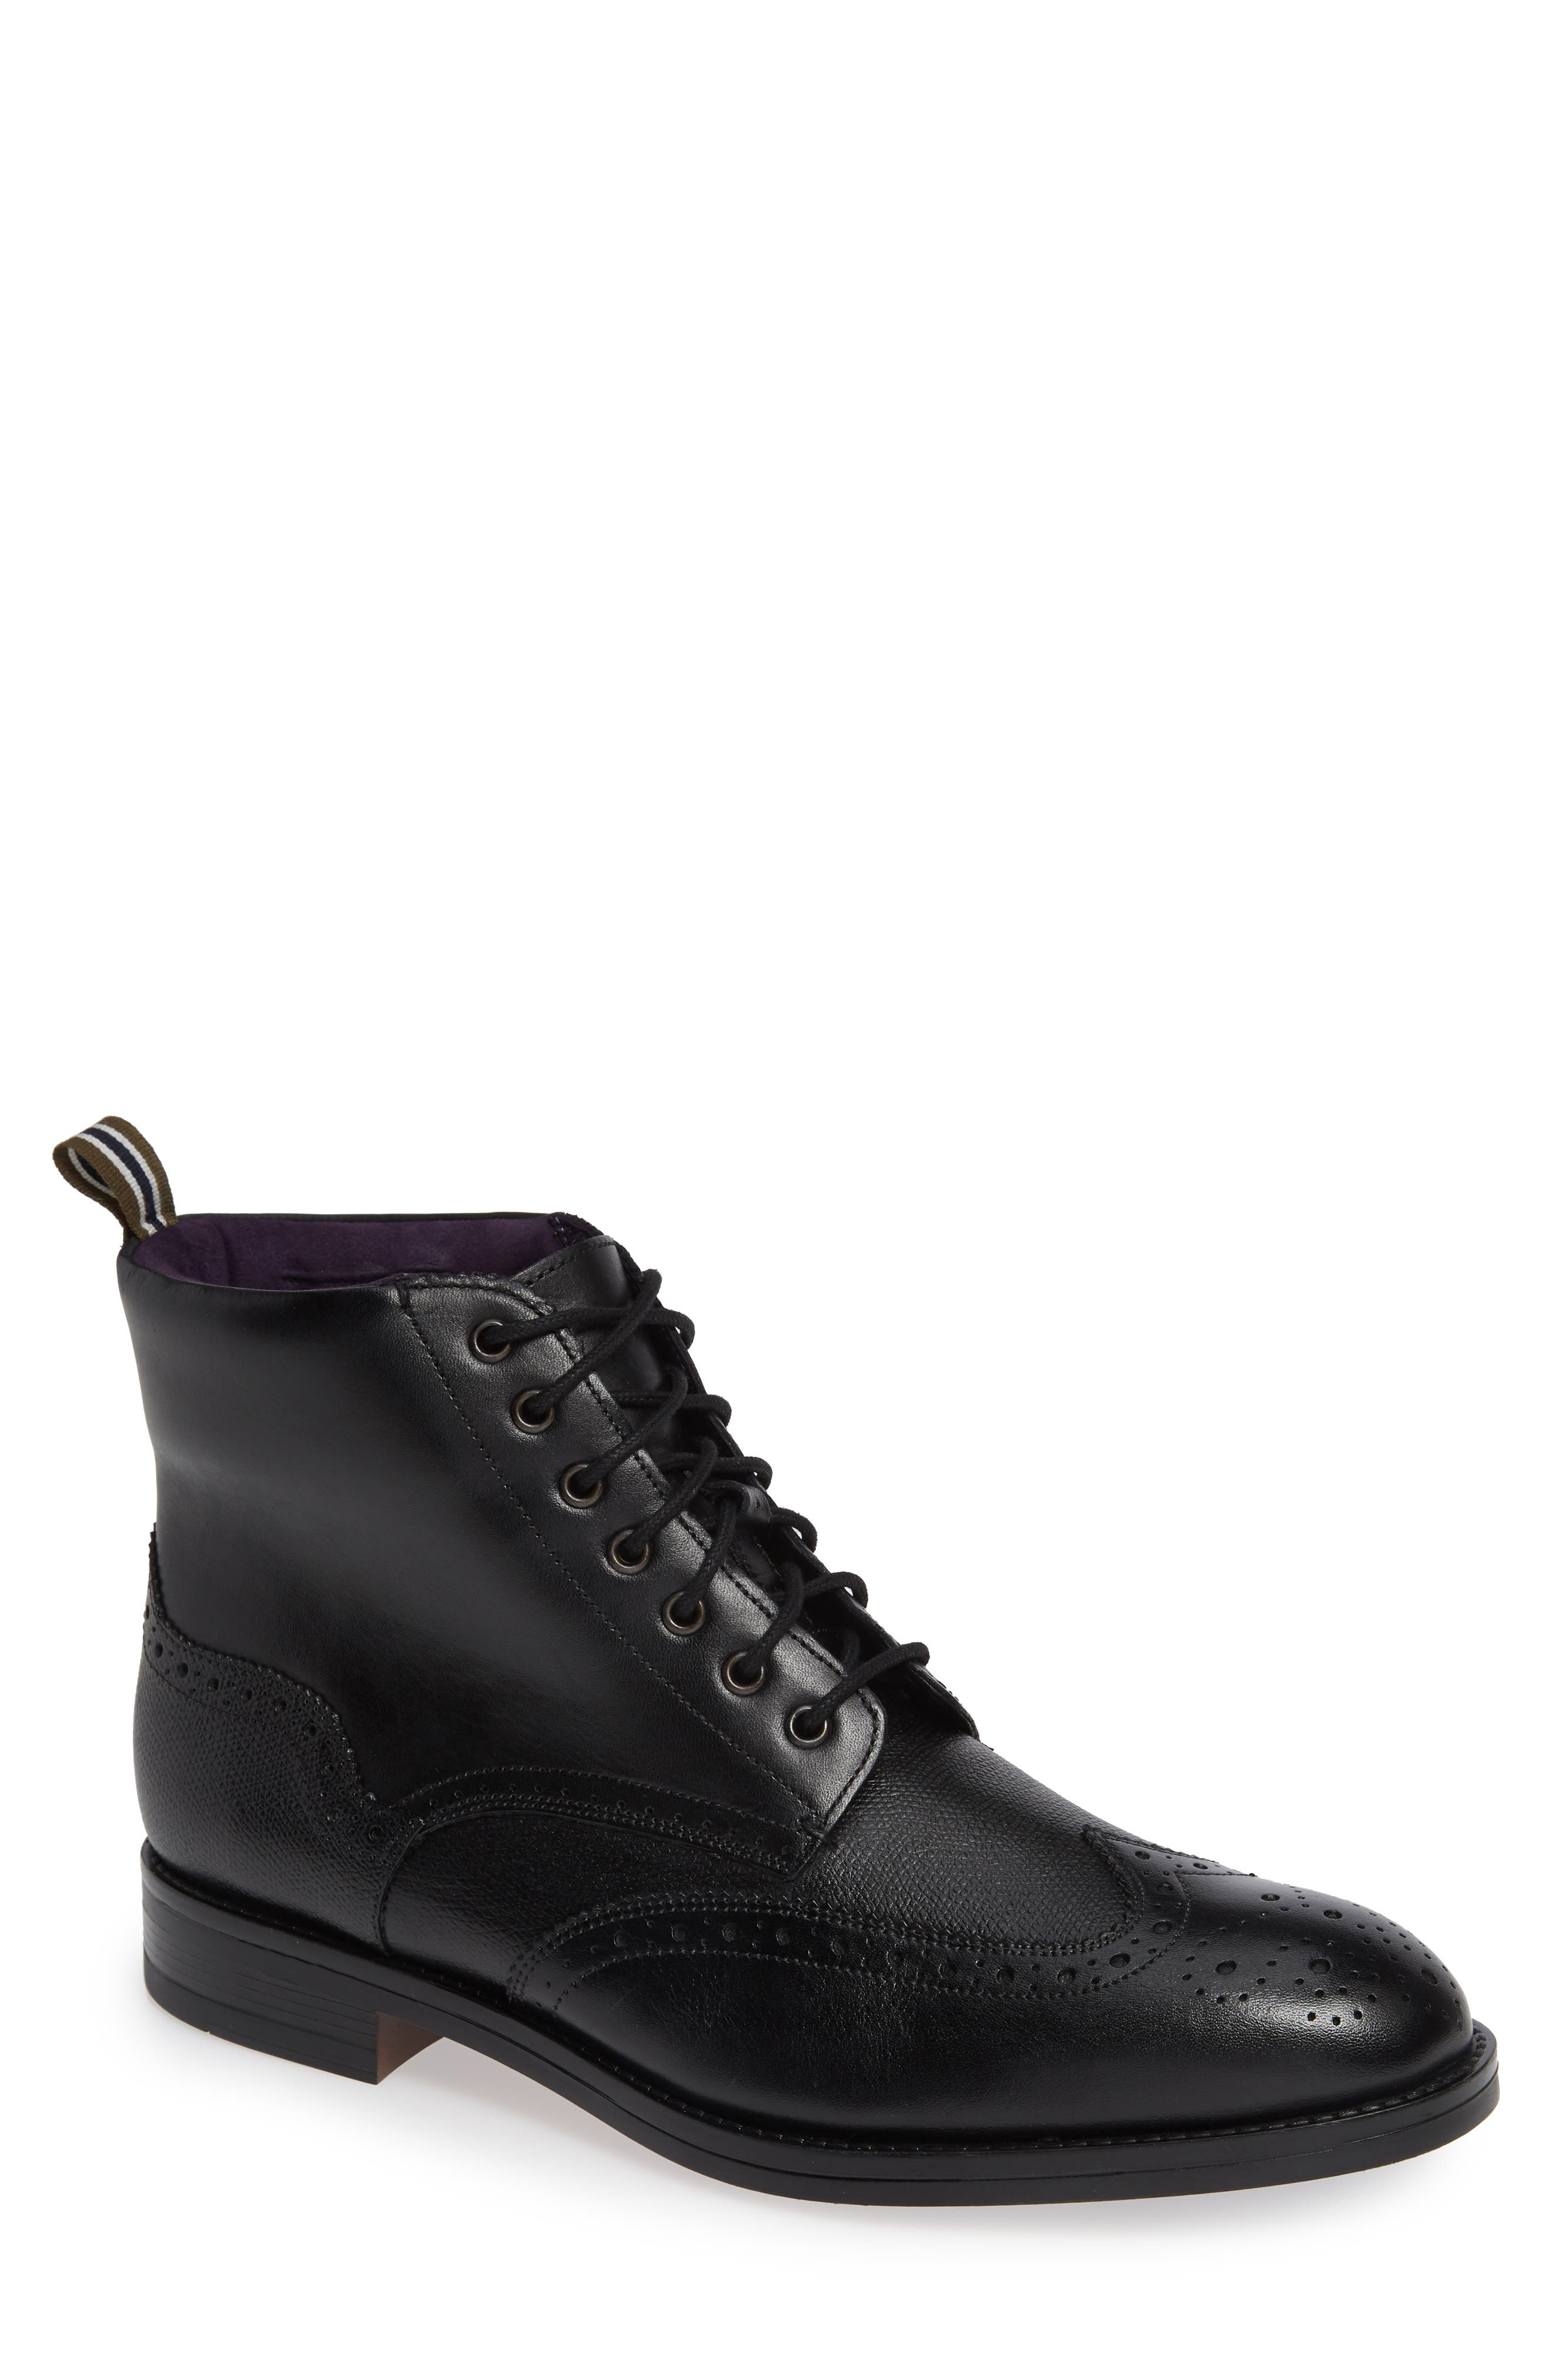 TED BAKER LONDON Twrens Wingtip Boot, Main, color, BLACK LEATHER